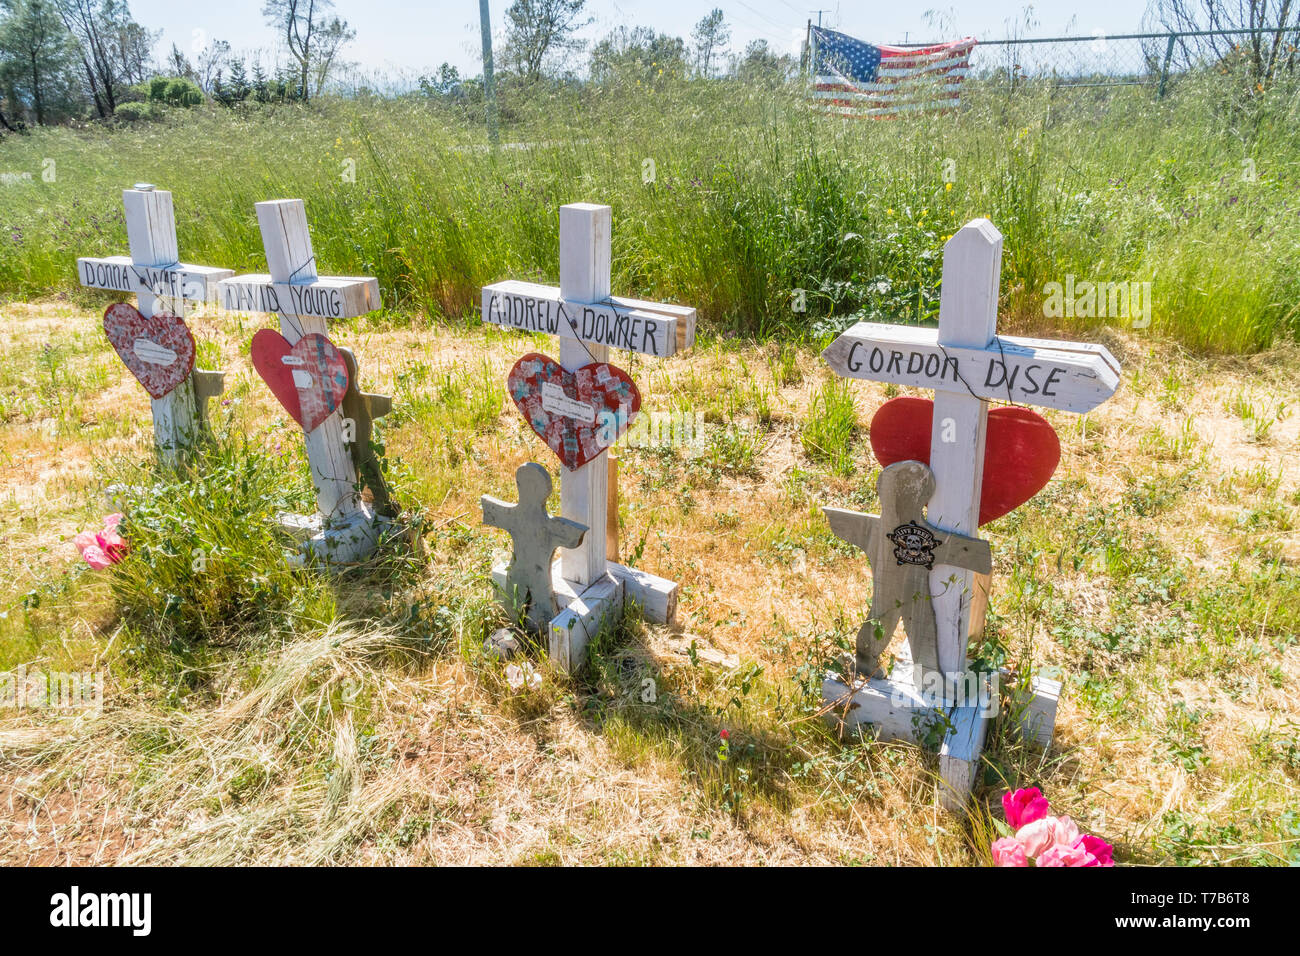 86 crosses were planted to memorialize the victims of the Camp Fire disaster in Paradise, California. The crosses were the idea of Greg Zanis, from Ch Stock Photo